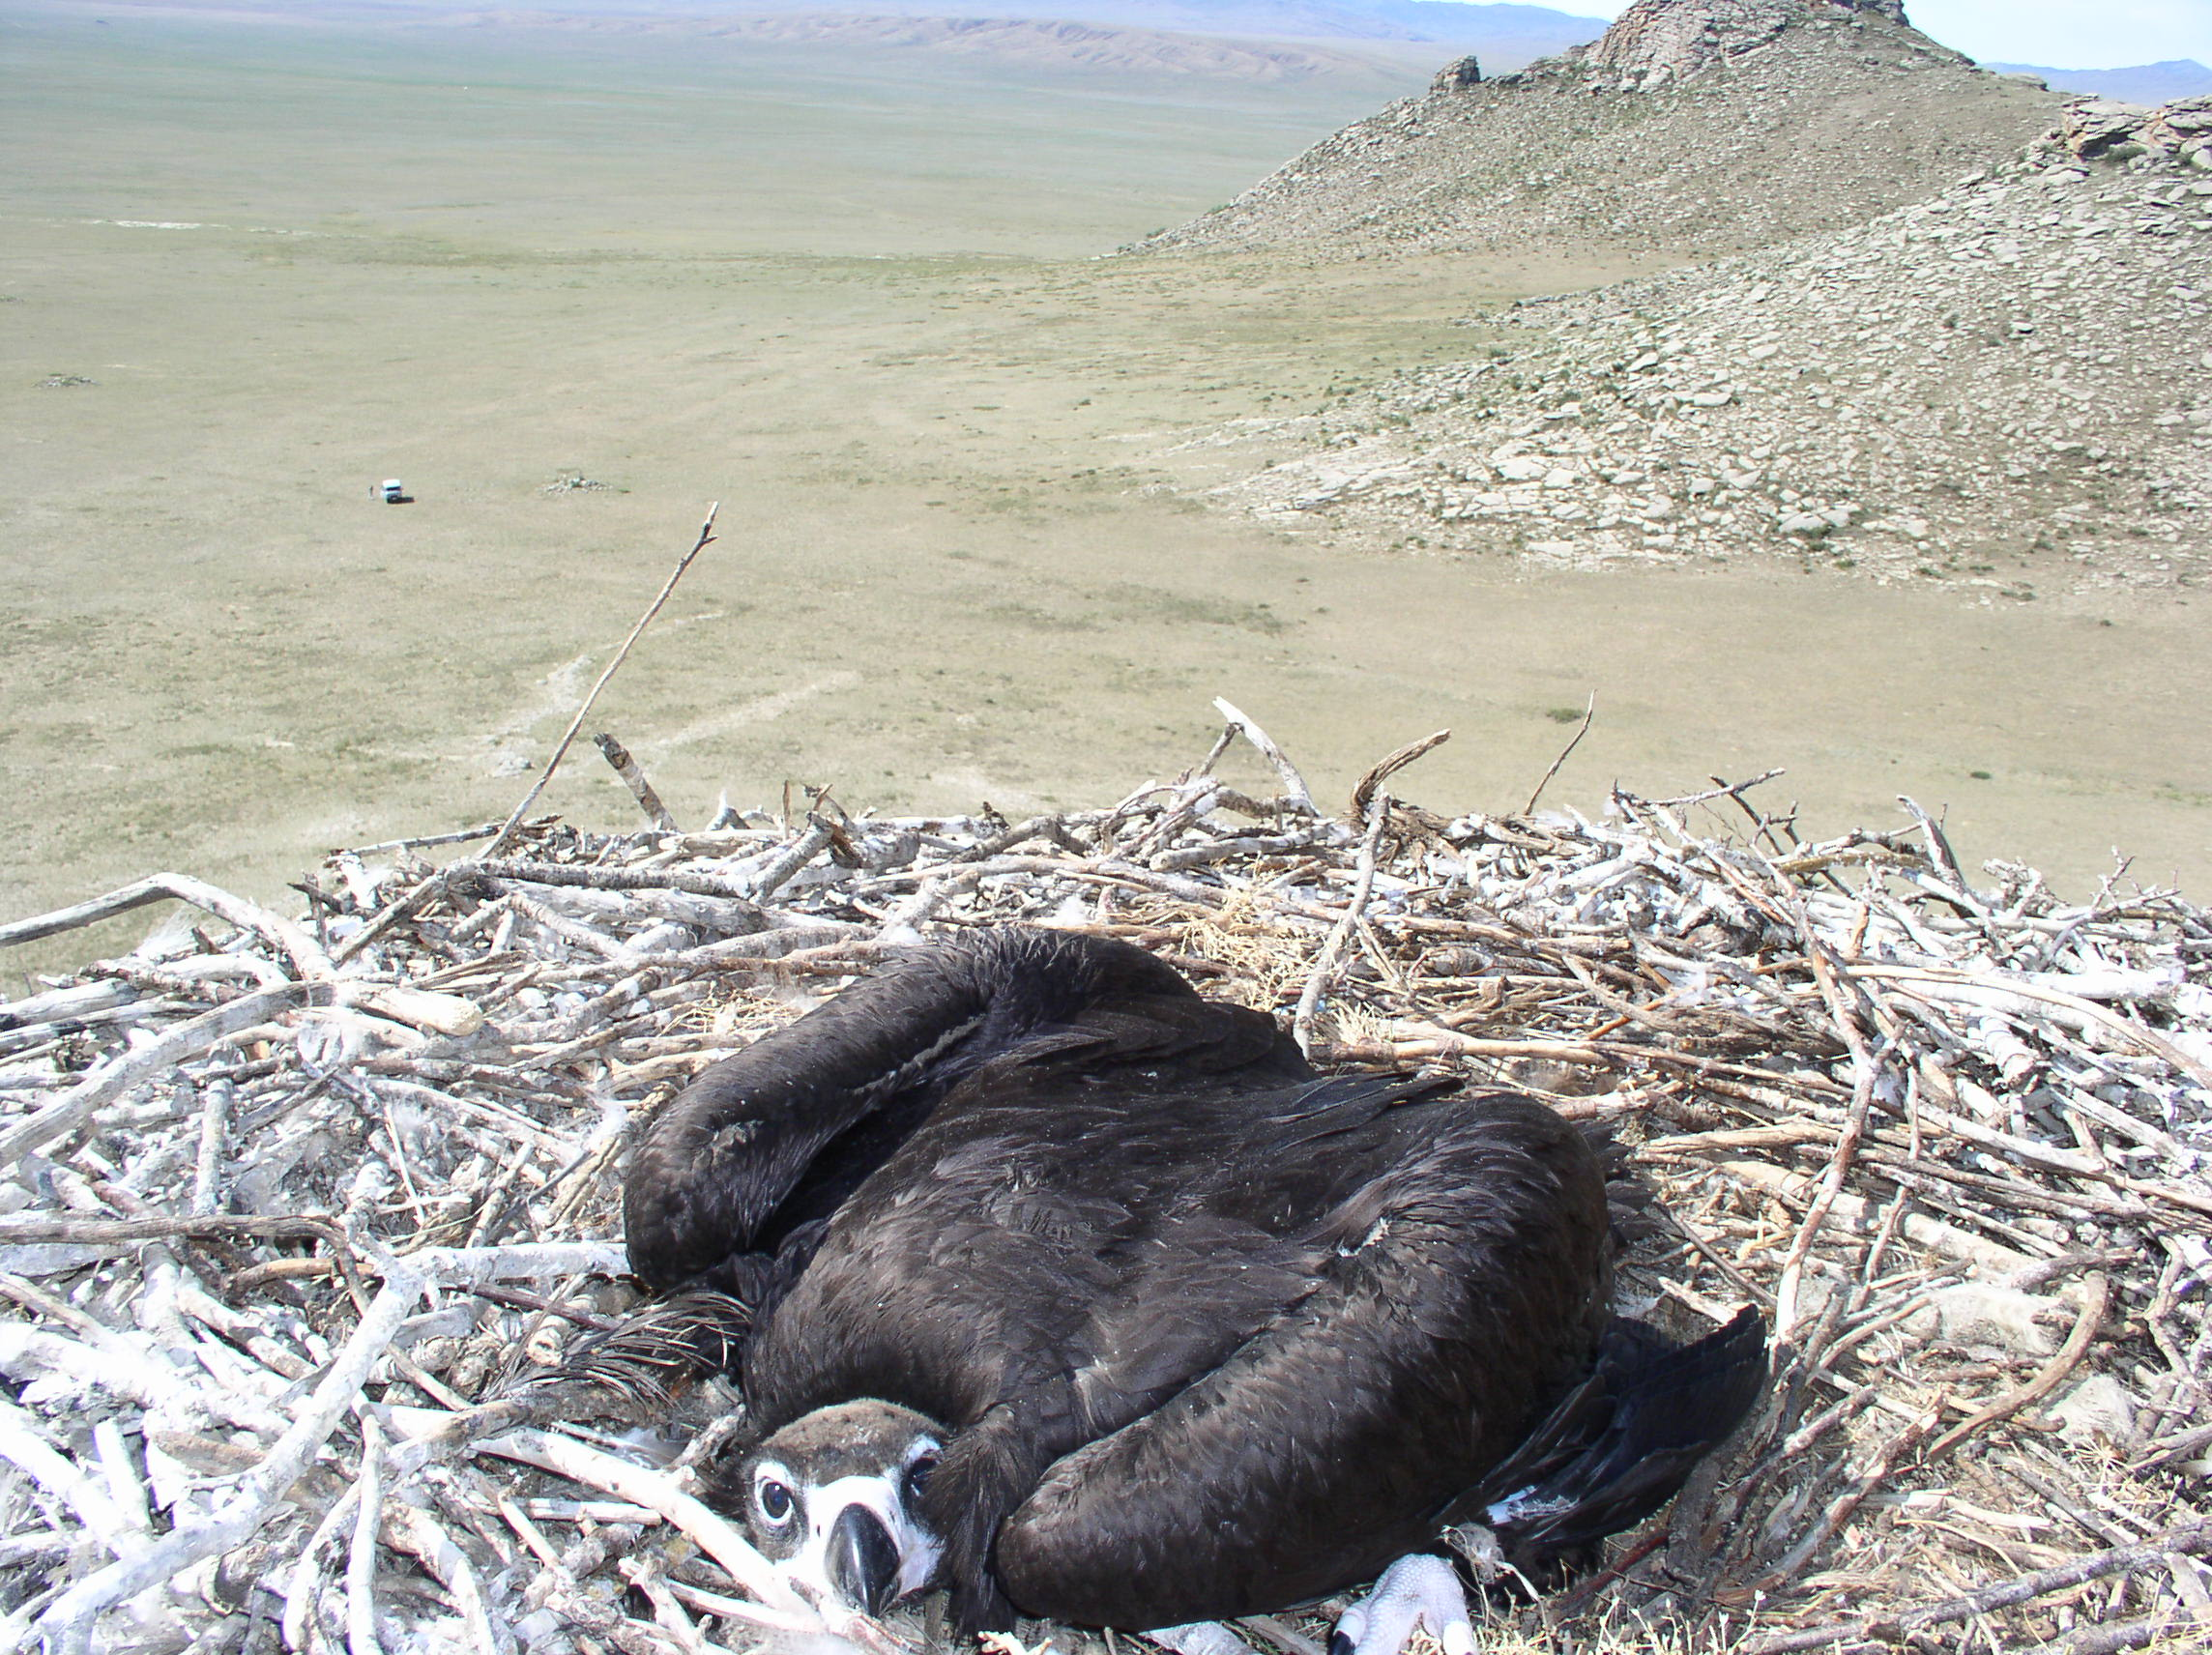 A vulture protecting its nest